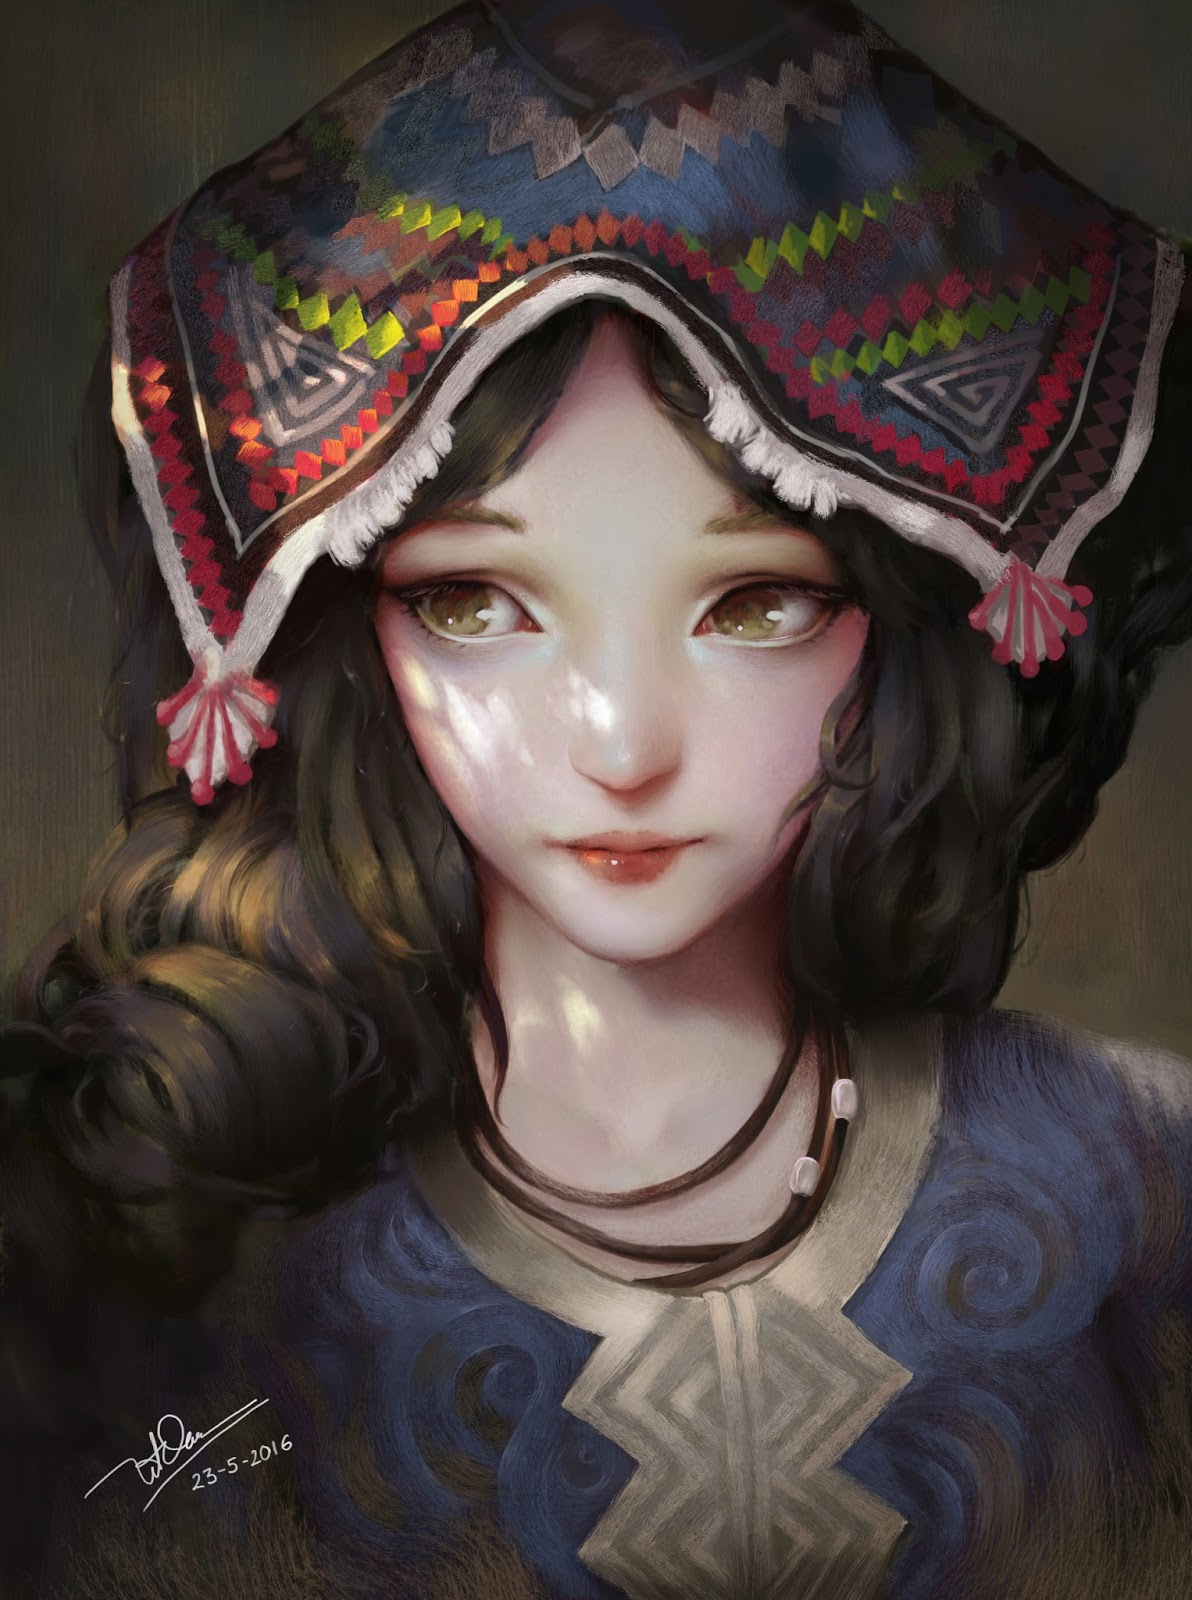 Digital Art By Dao Le Trong